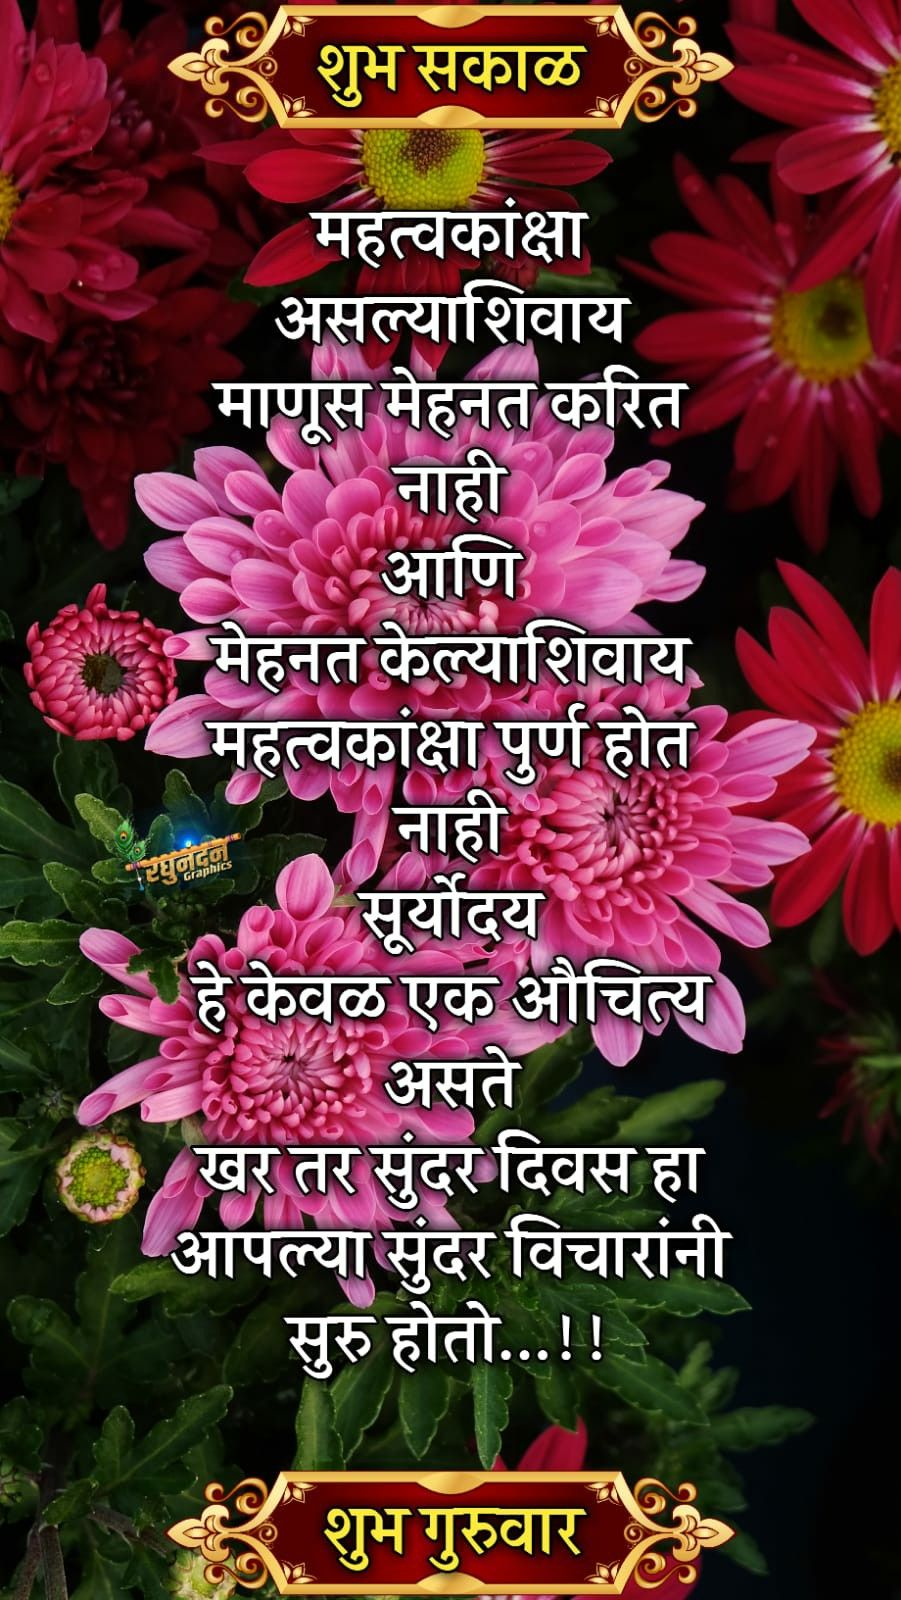 Pin By Nageshbobhate On श भ सक ळ Marathi Quotes Poster Good Morning